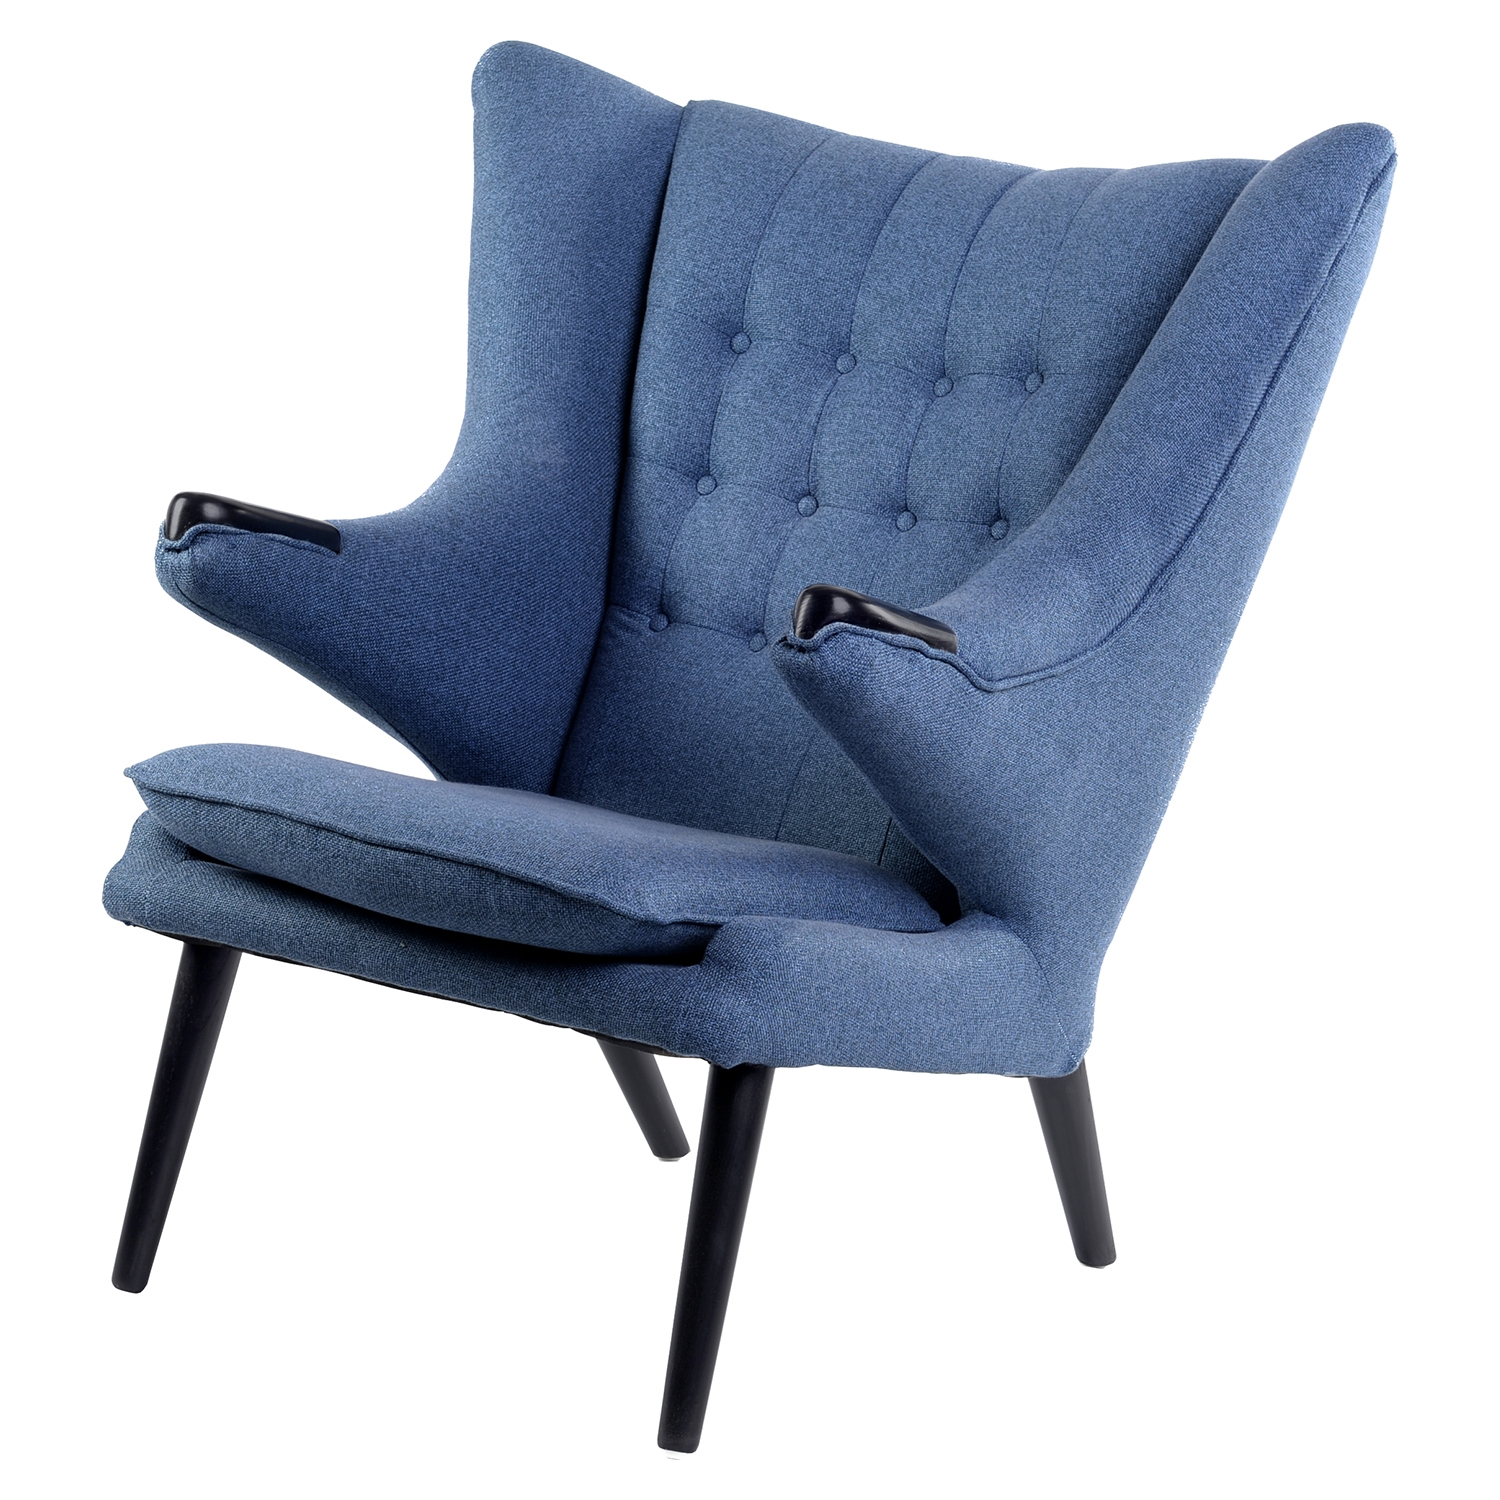 Bjorn Button Tufted Upholstery Chair - Dodger Blue - NYEK-445545